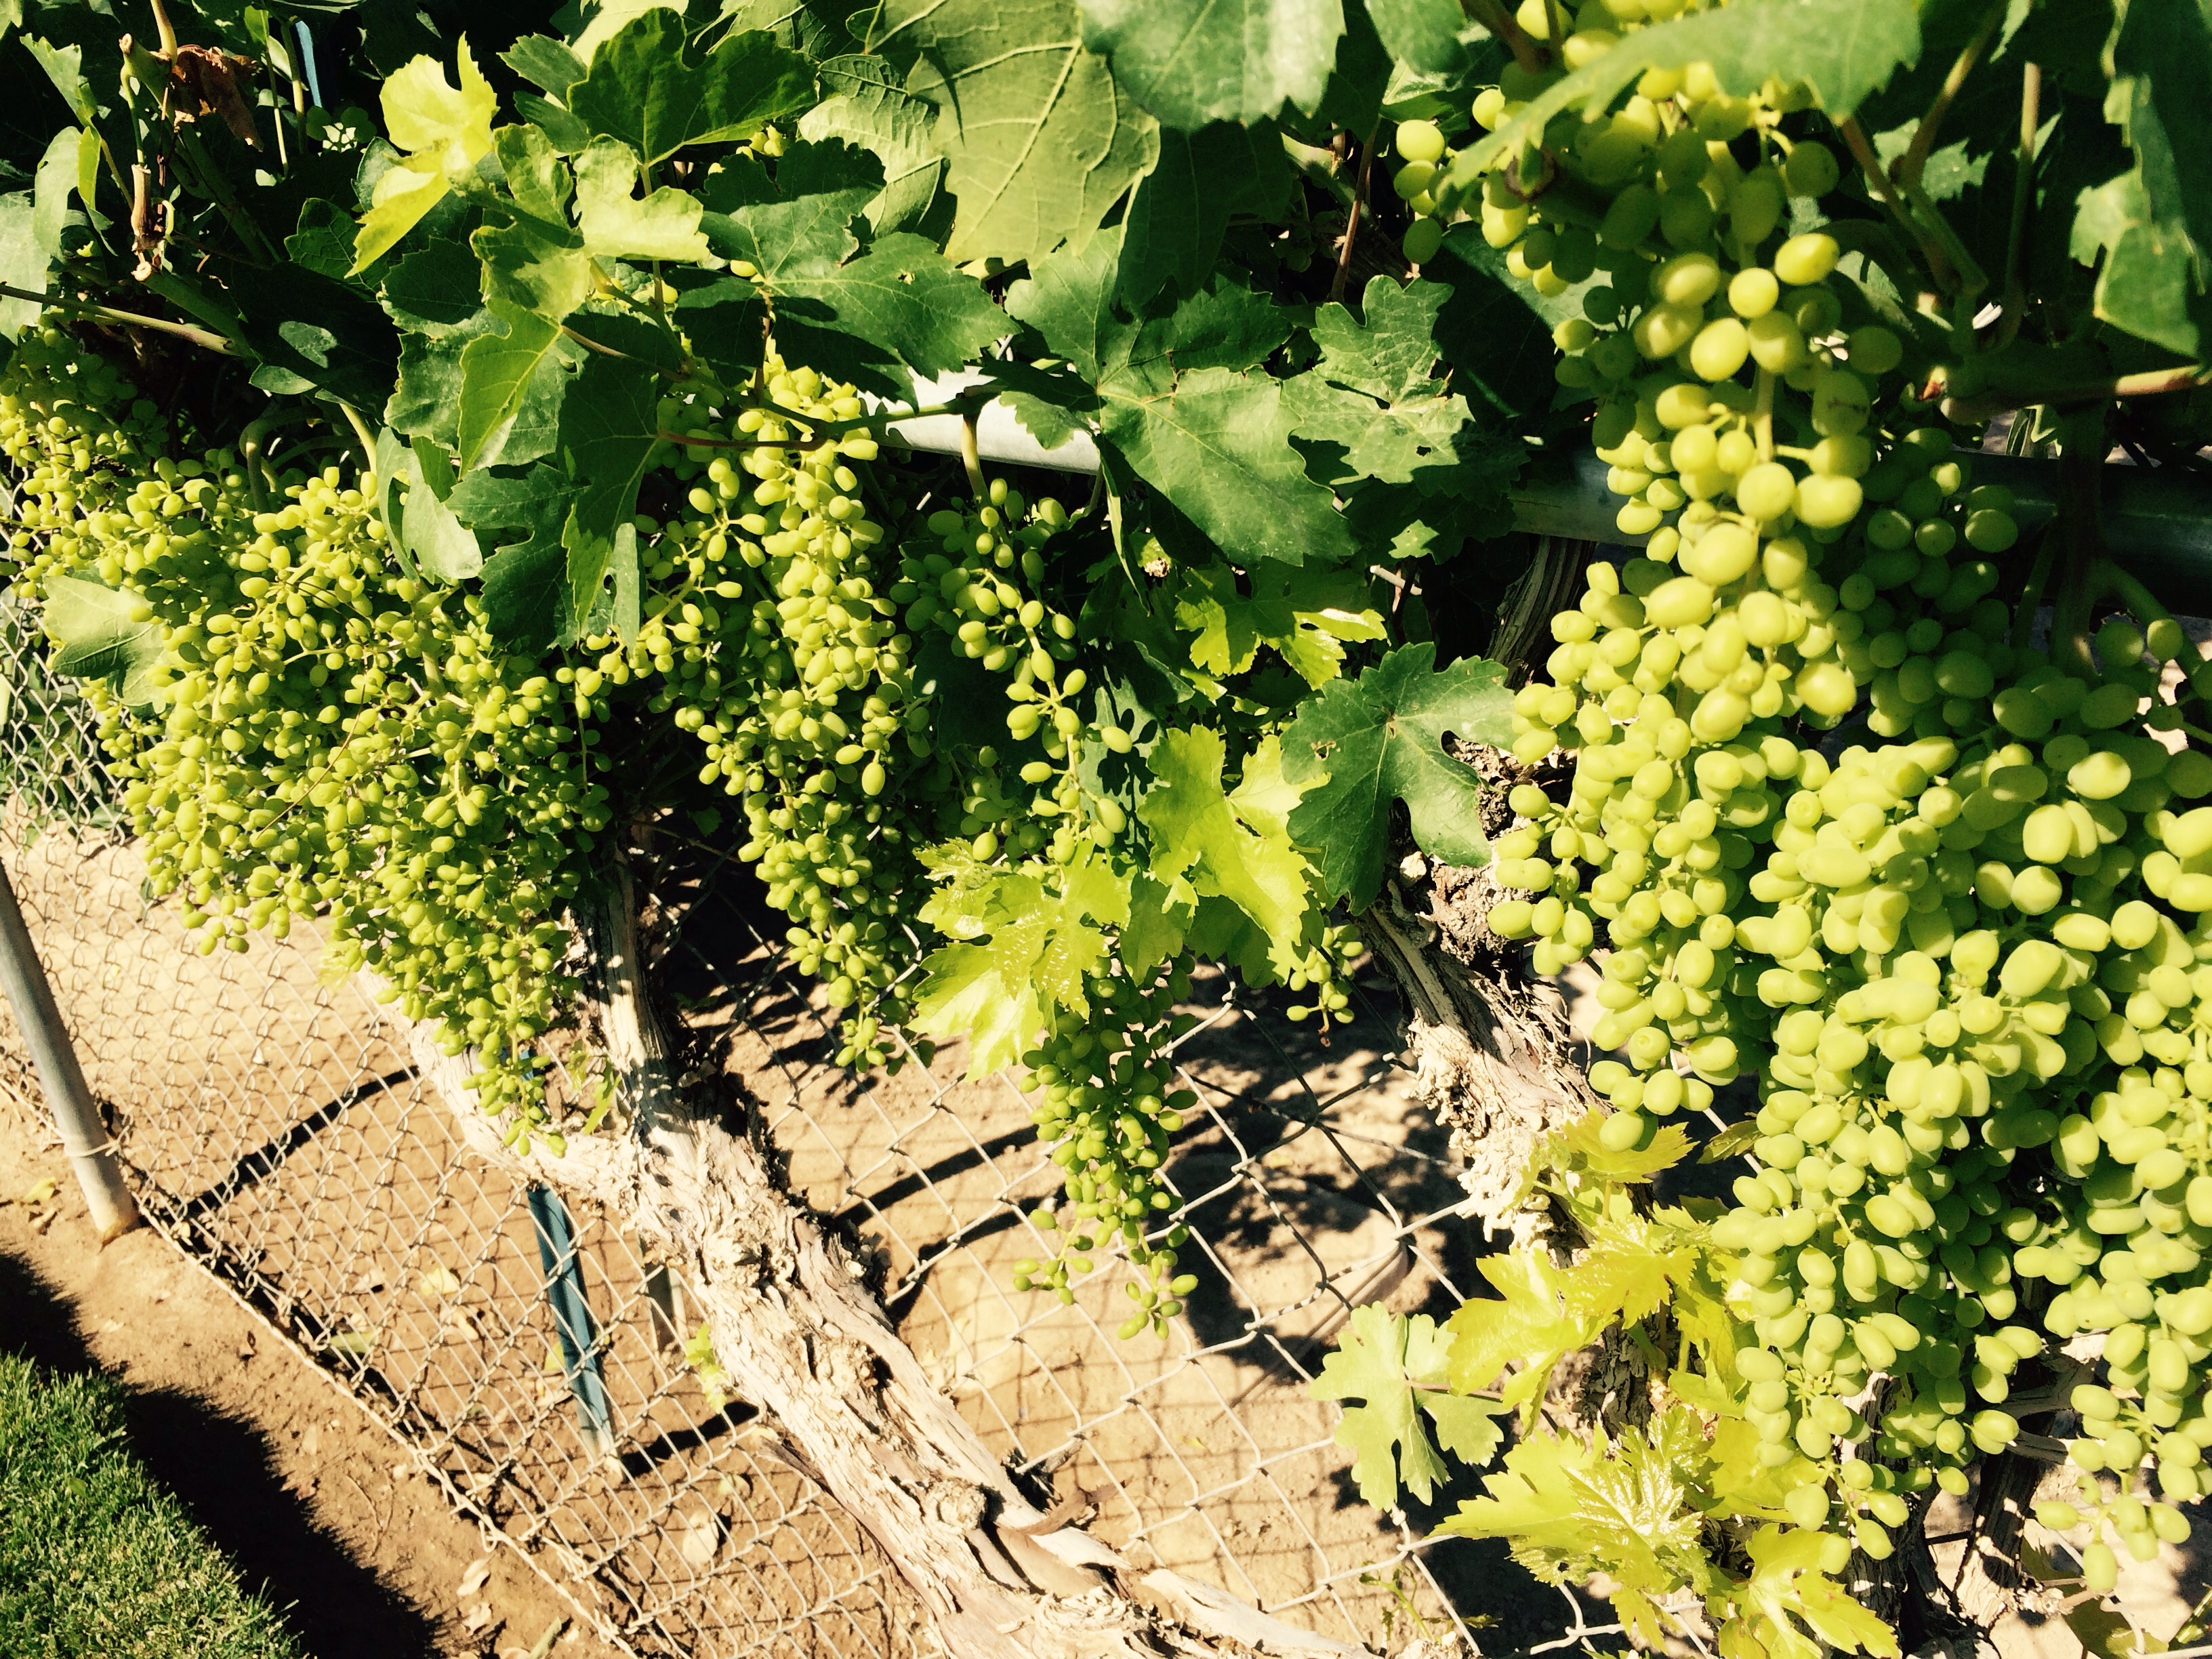 I think we are going to Have a record crop this year of grapes both in vineyards as well as table grapes